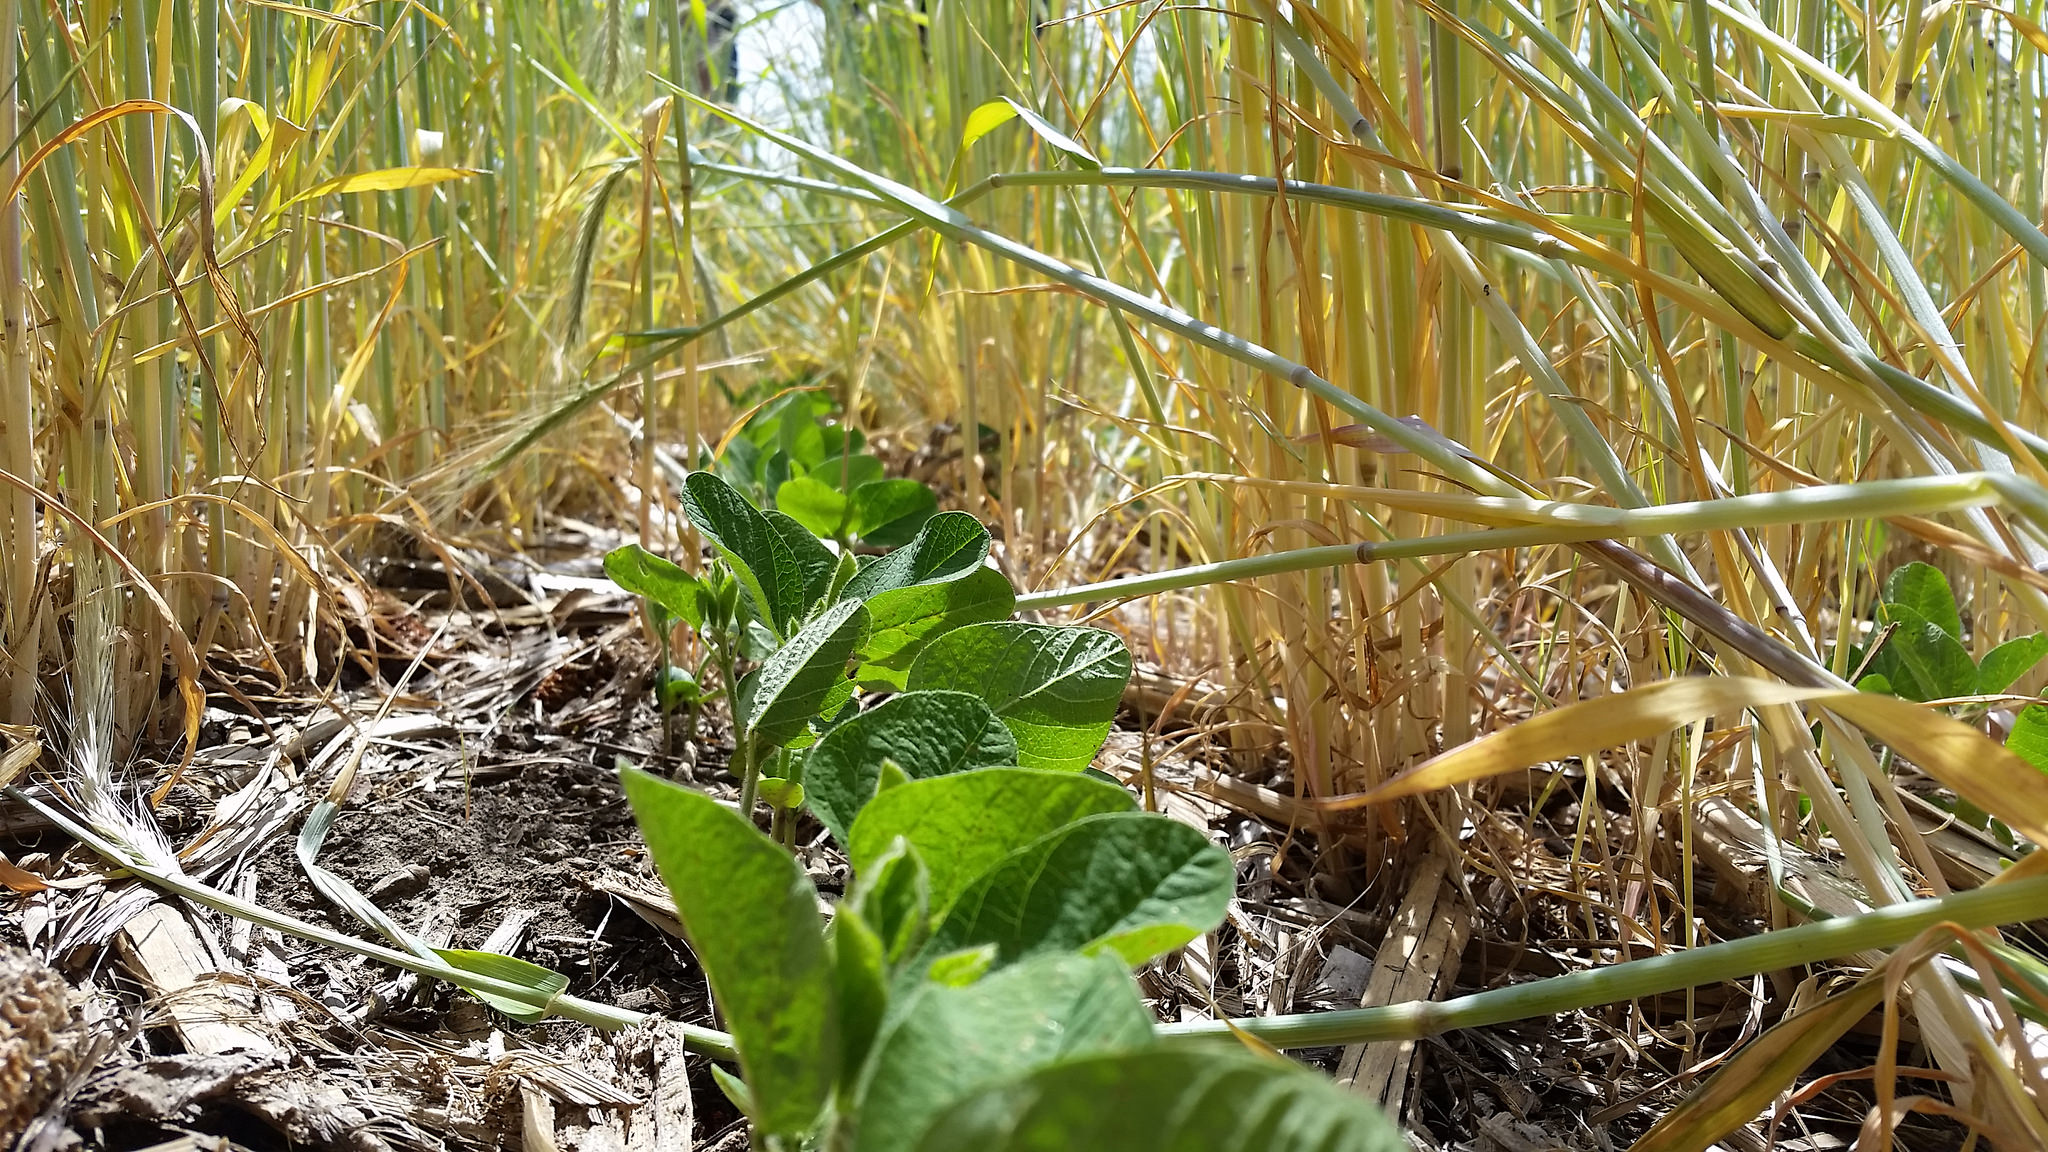 soybeans in rye cover crop.